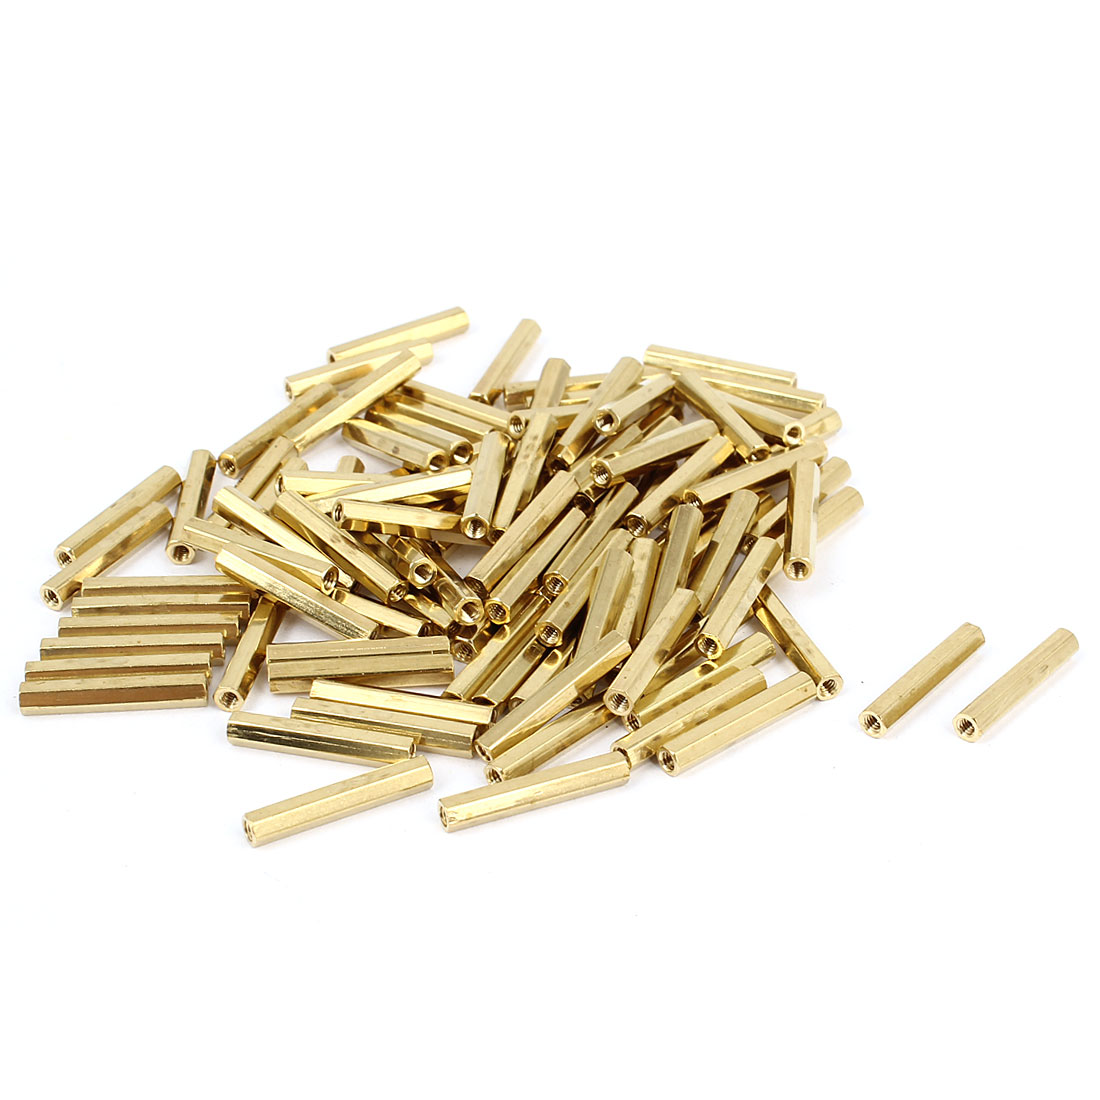 100 Pcs M2 x 18mm Gold Tone Dual Ends CCTV Camera Standoff Hexagonal Nut Spacer